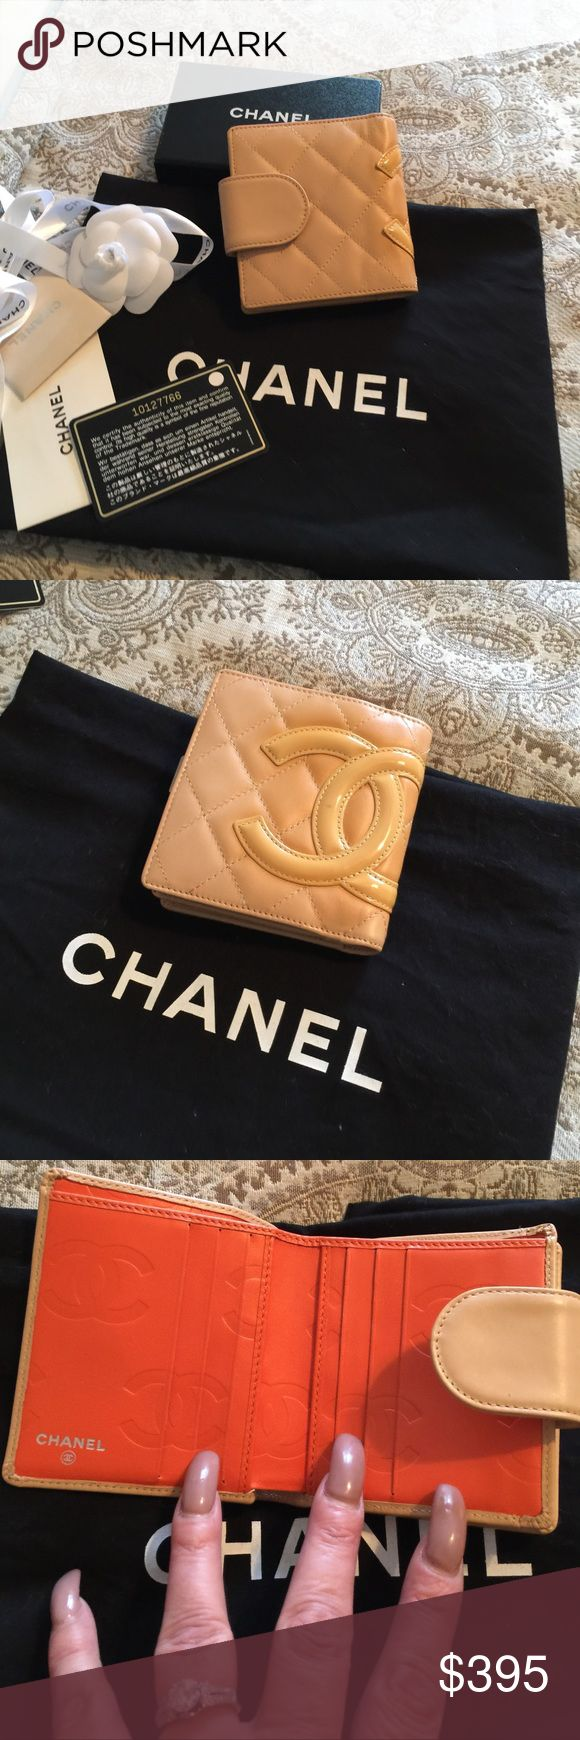 Authentic Chanel wallet beautiful condition Great authentic Chanel wallet excellent condition. Holds a lot. Nude / tan leather outside orange lining. Super cute good size CHANEL Bags Wallets